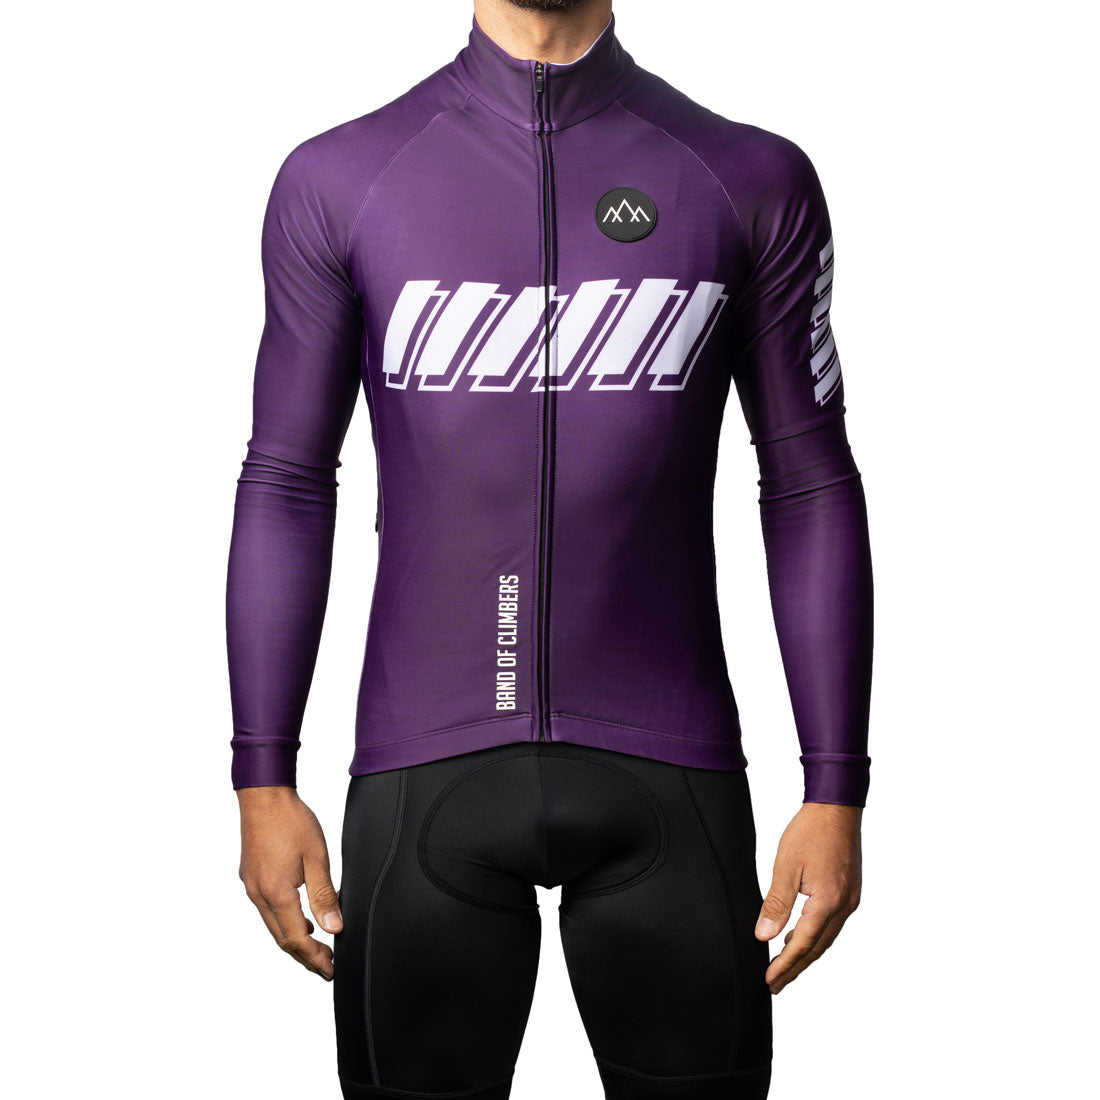 ThermoAscent Long Sleeve Jersey - Violet